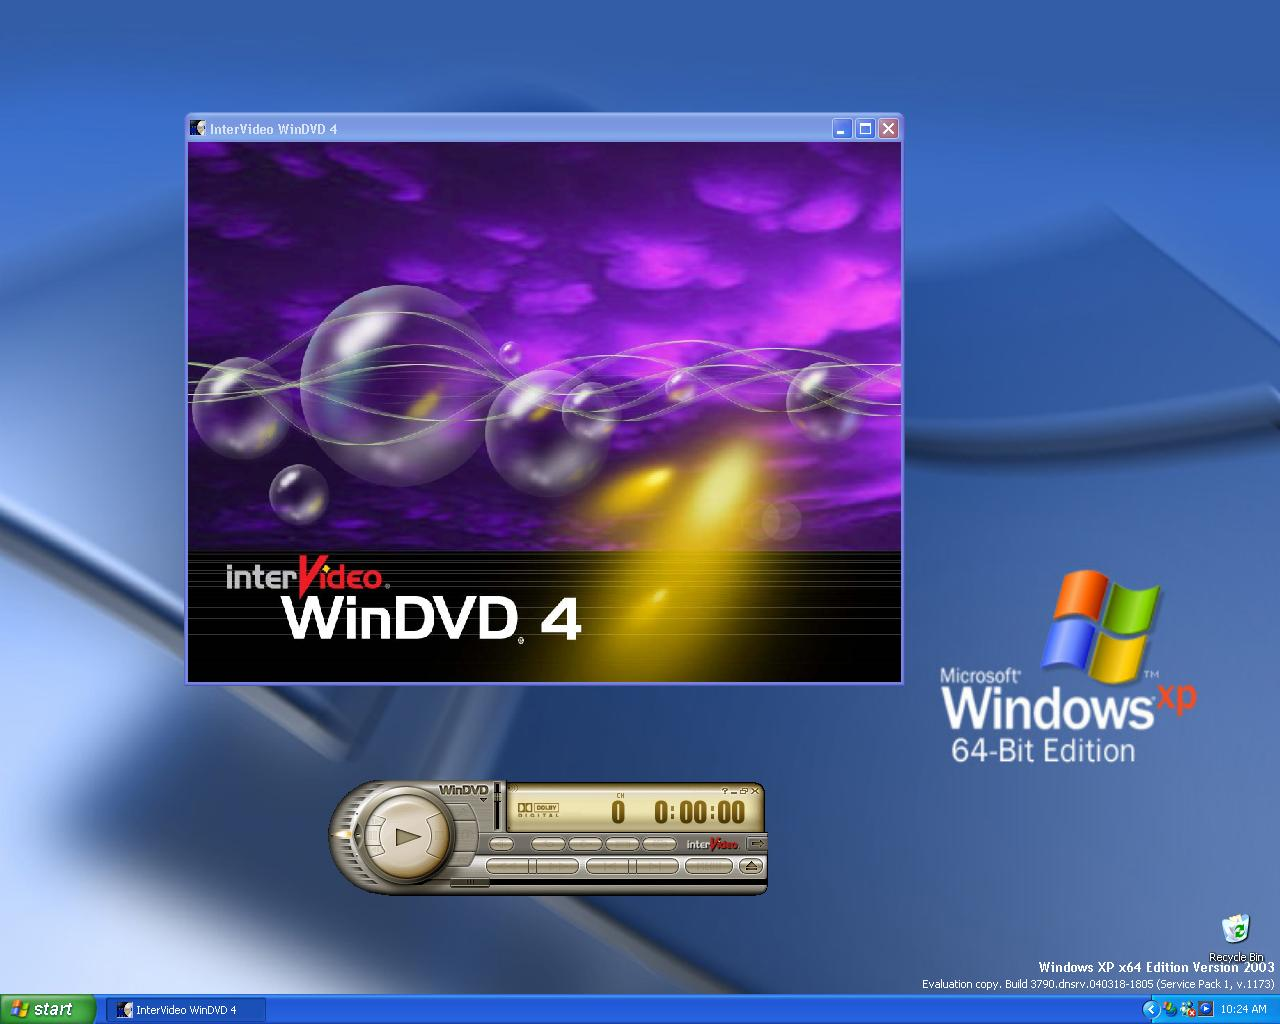 Windows xp 64 bit for amd cpus for Window 64 or 32